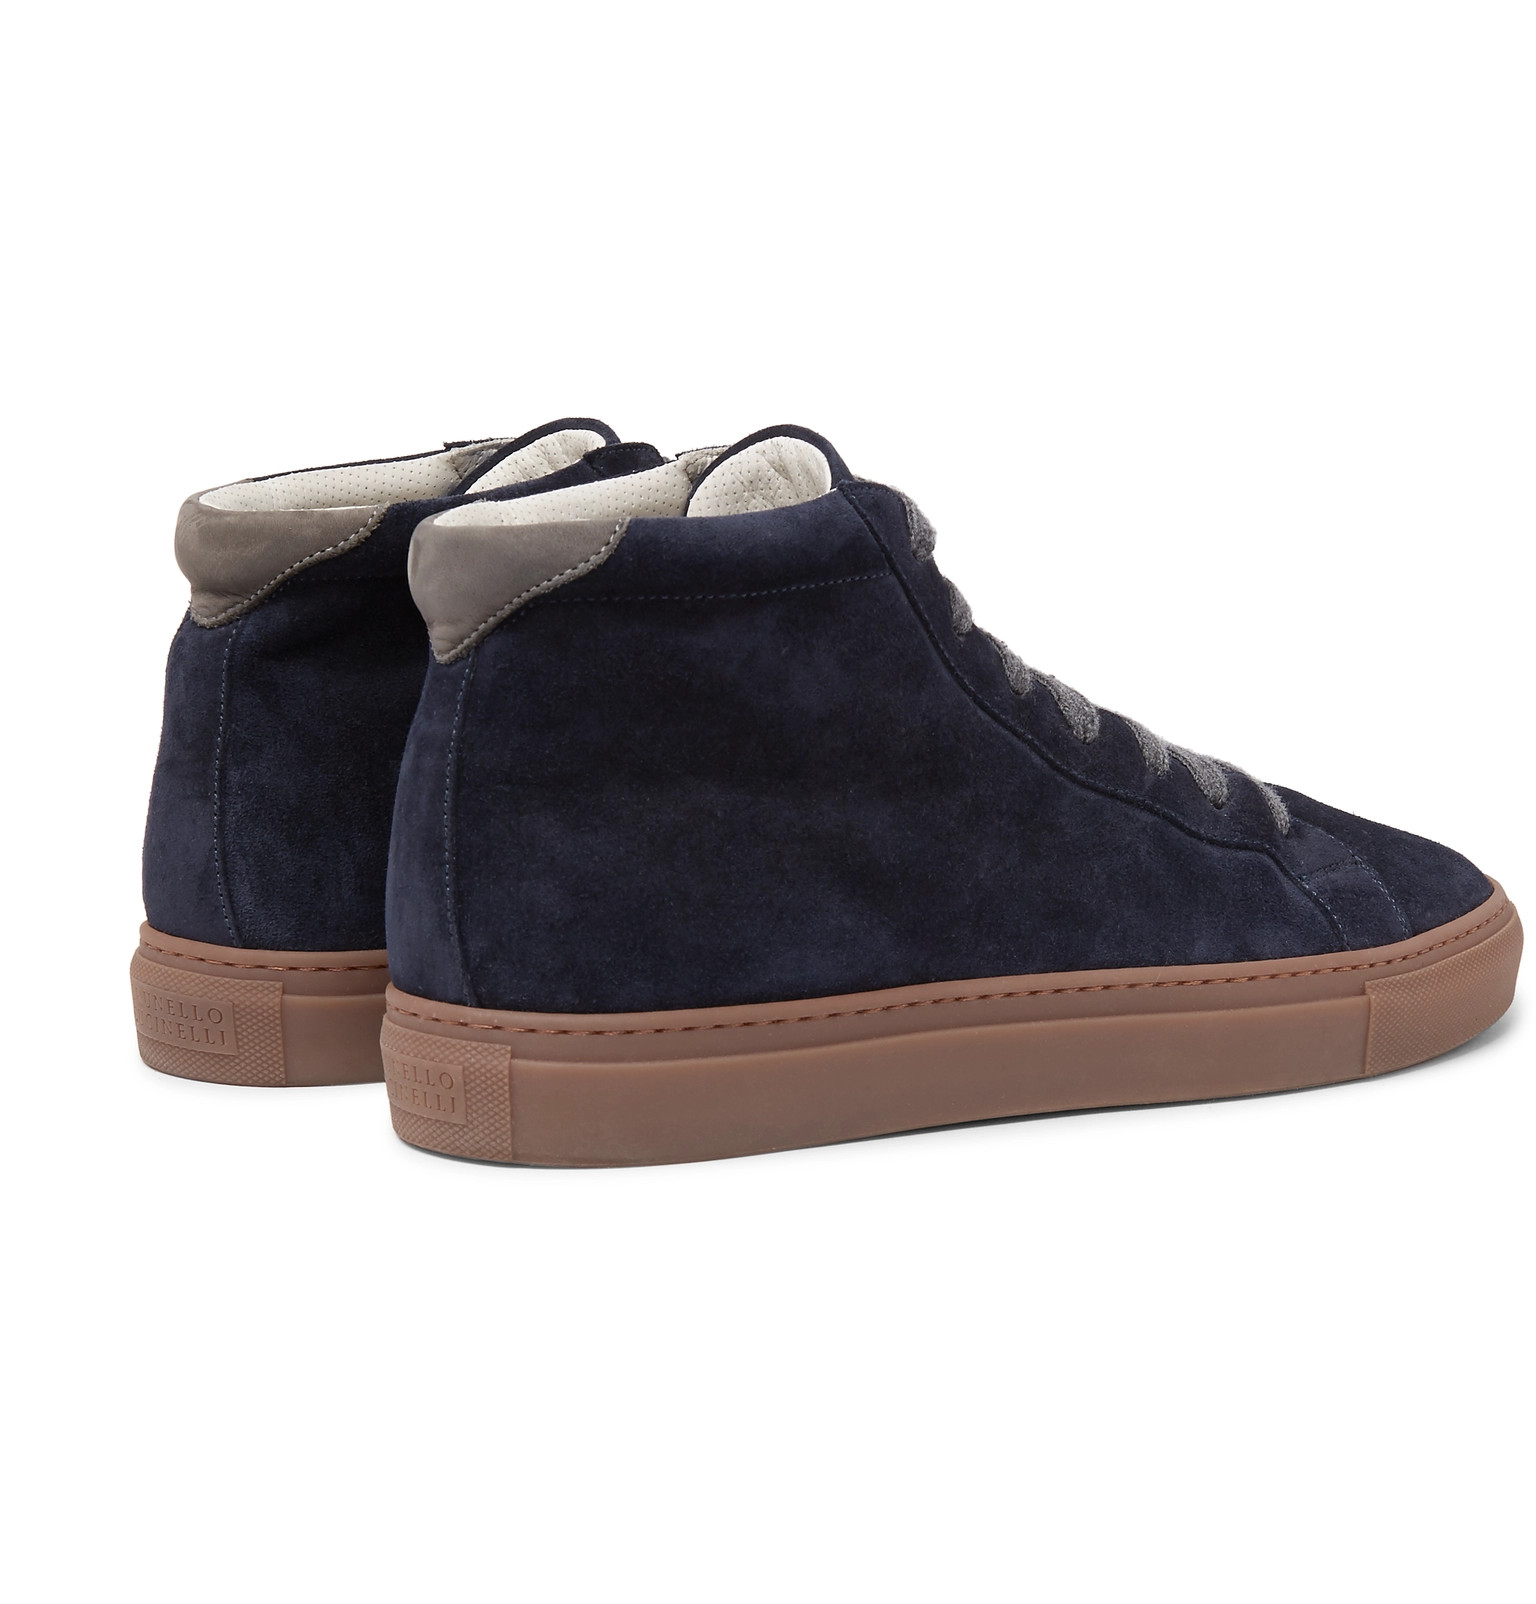 Suede Nubuck Top High Cucinelli Brunello Trimmed Sneakers wRqfp58